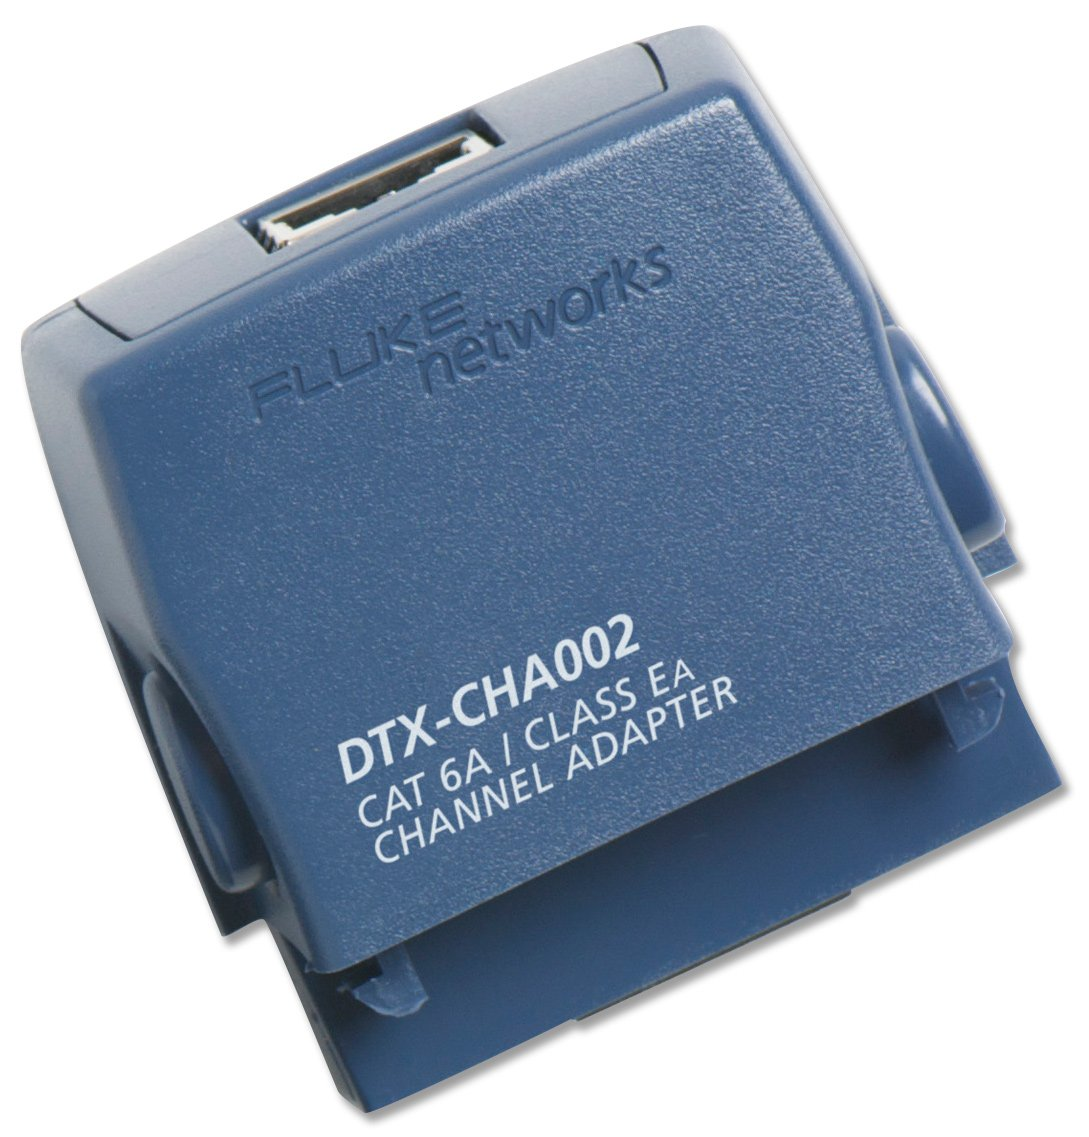 Fluke Networks DTX-CHA002 Cat 6A/Class EA Channel Adapter for DTX ...